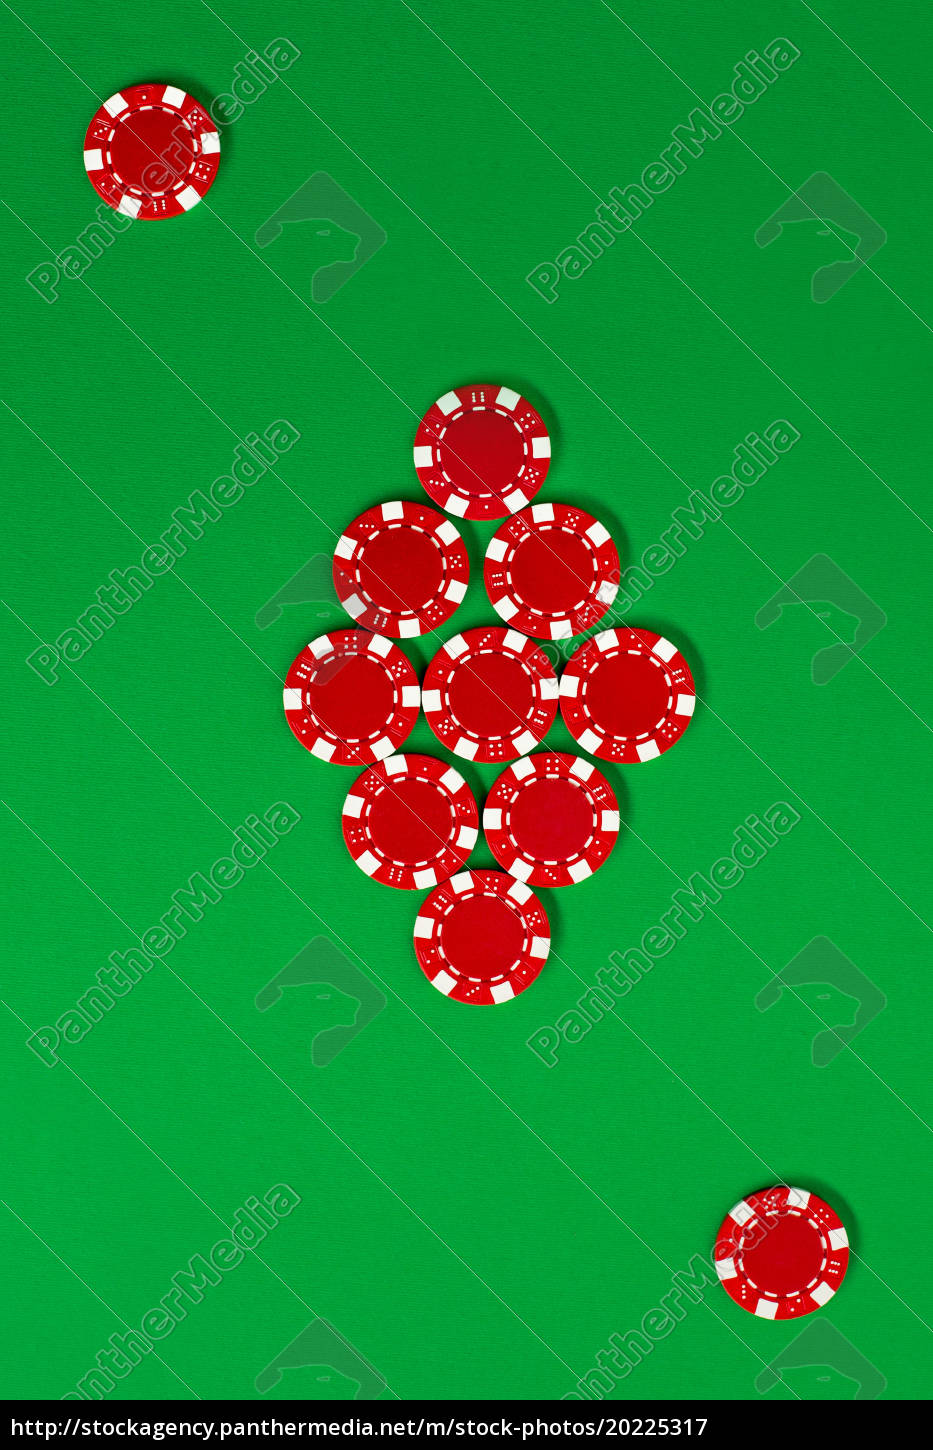 the, poker, chips, on, green, background - 20225317